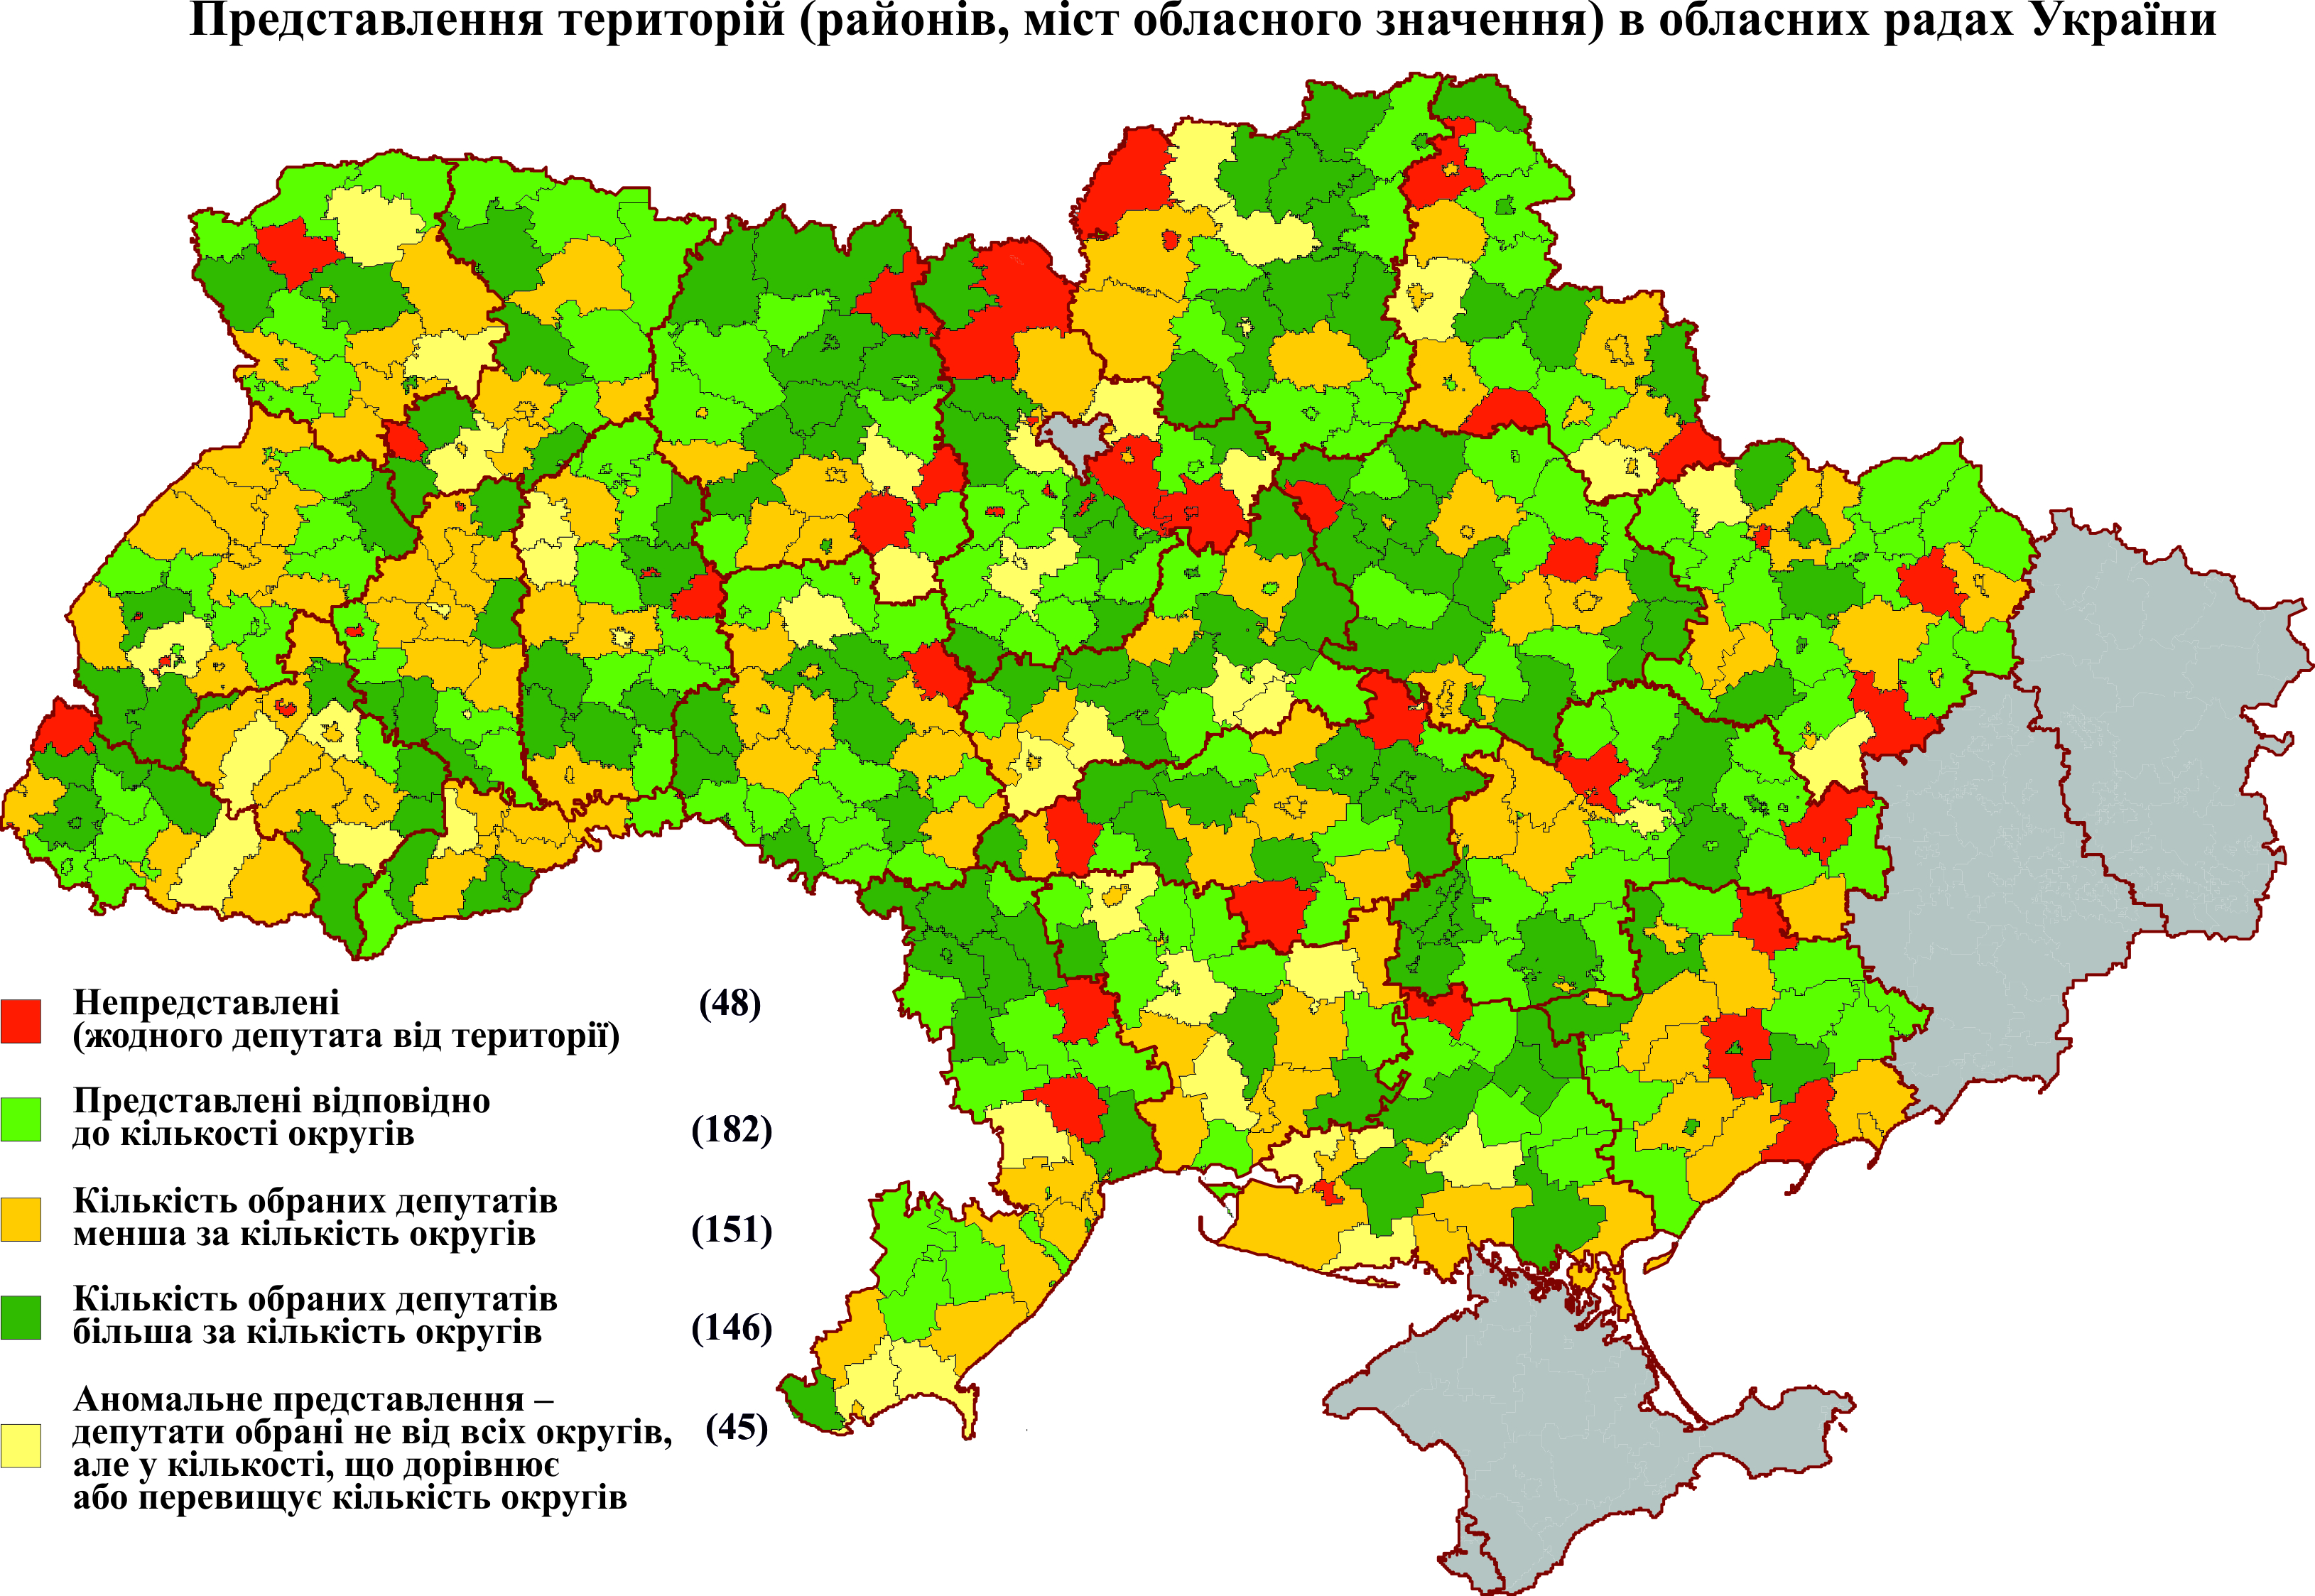 By the next local elections, we have to ensure proper representation of hromadas in local councils, - Vyacheslav Nehoda